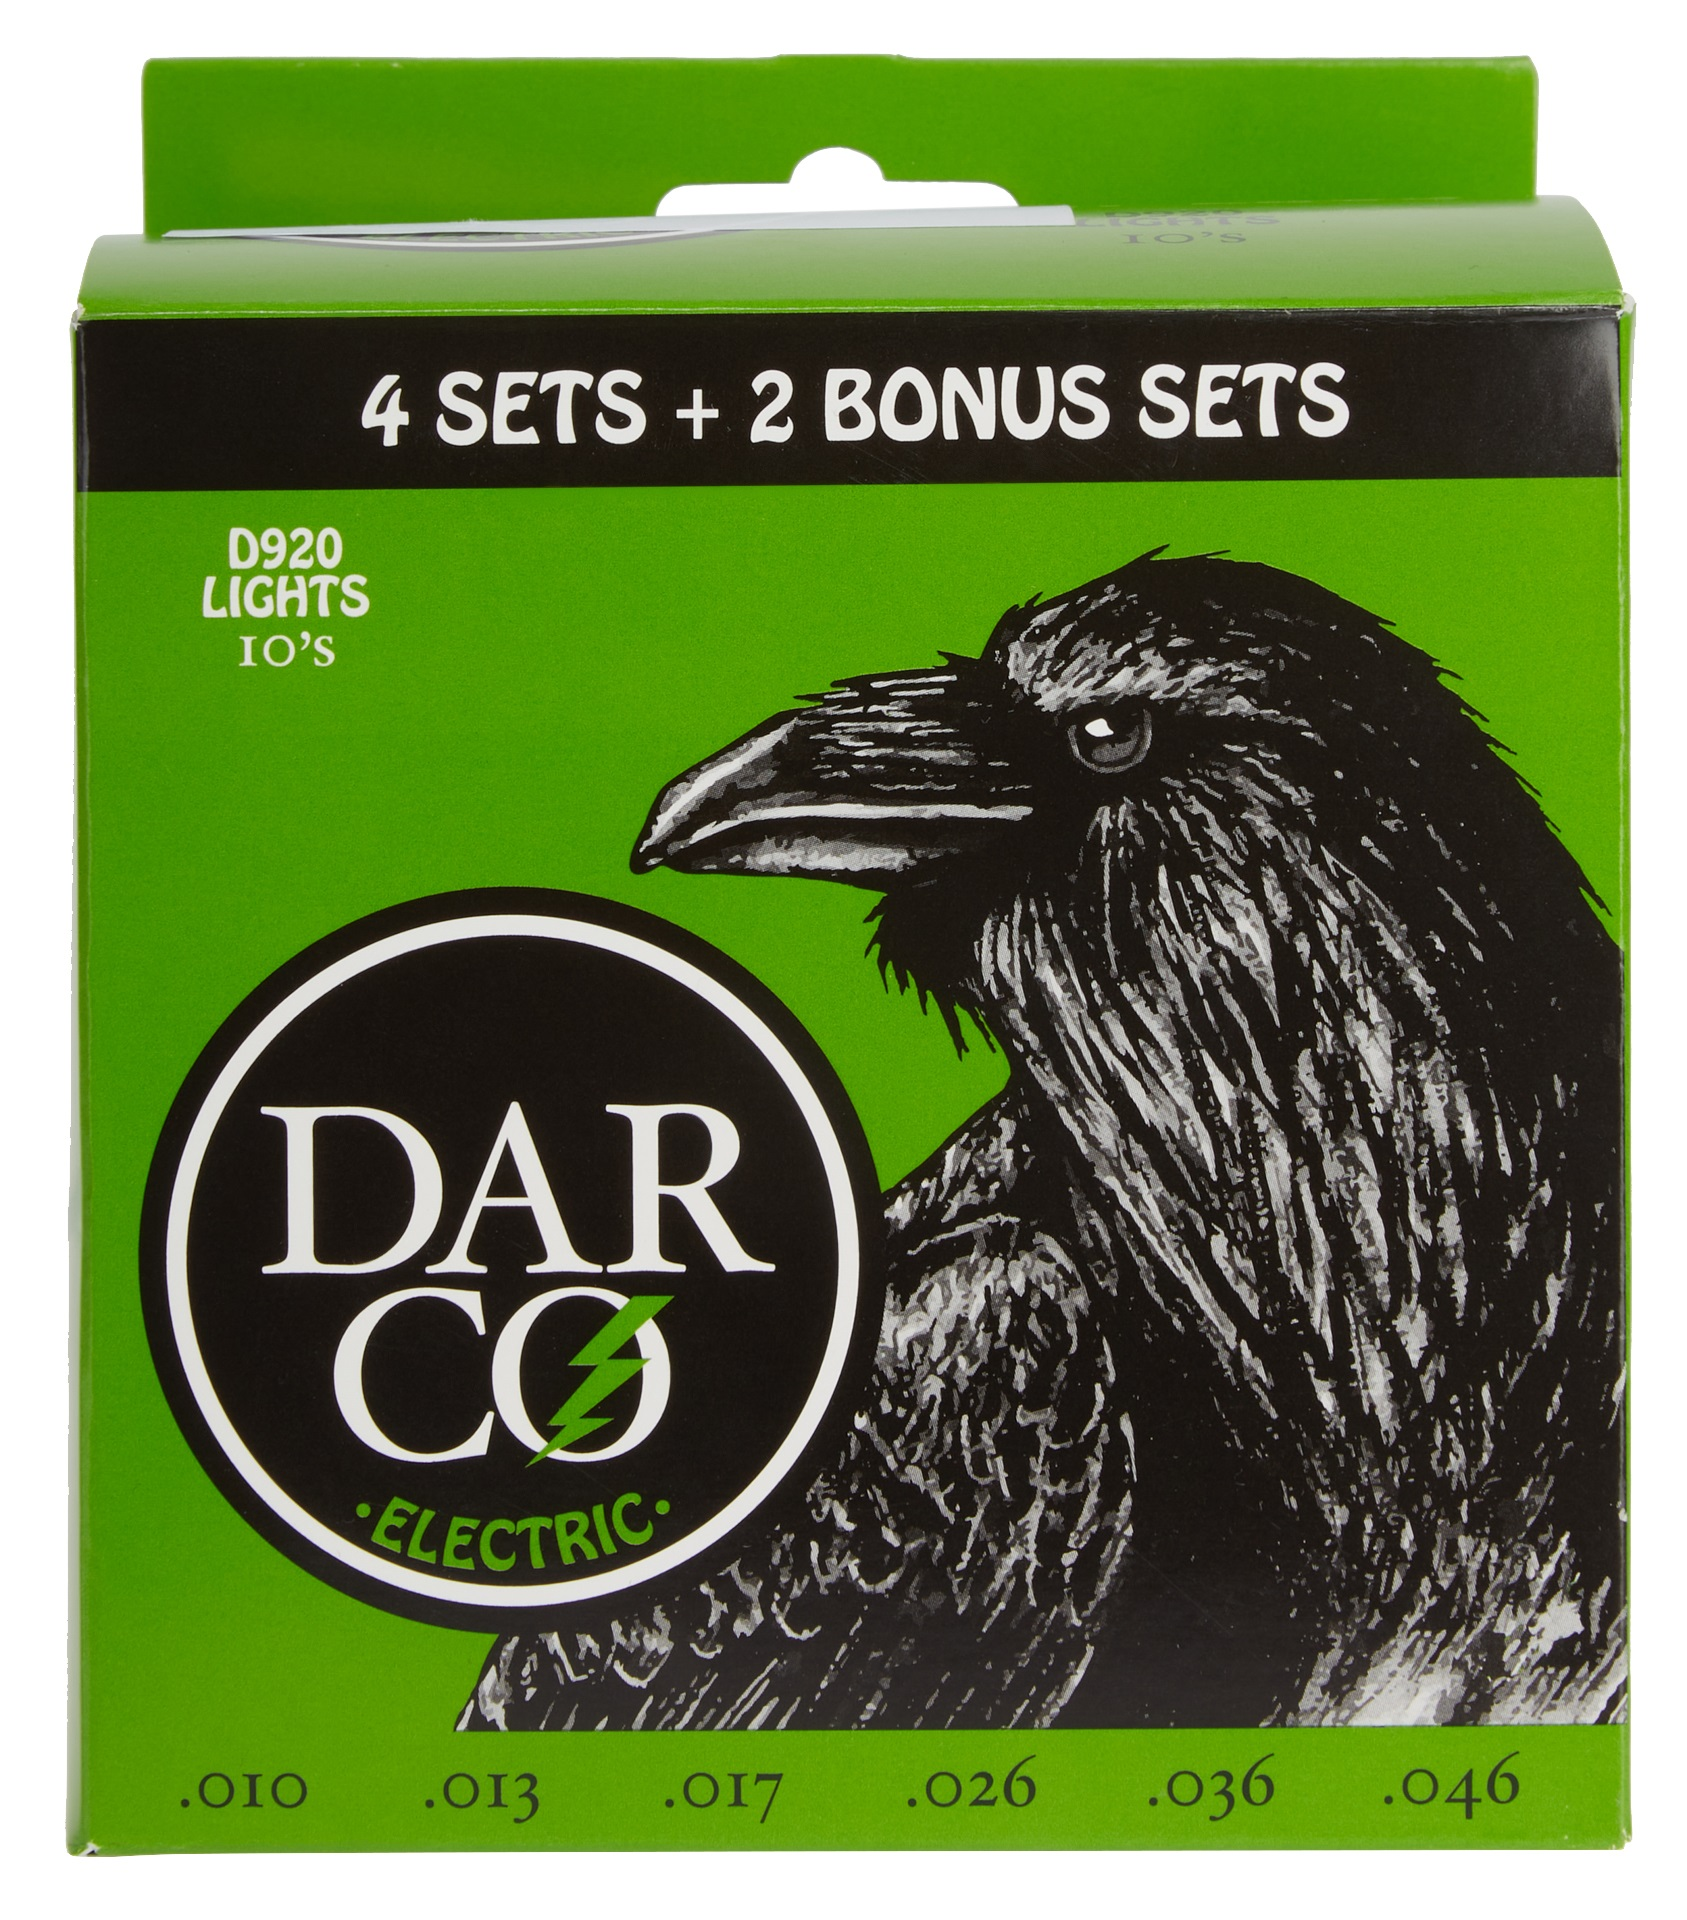 Darco Electric Lights Promo Pack